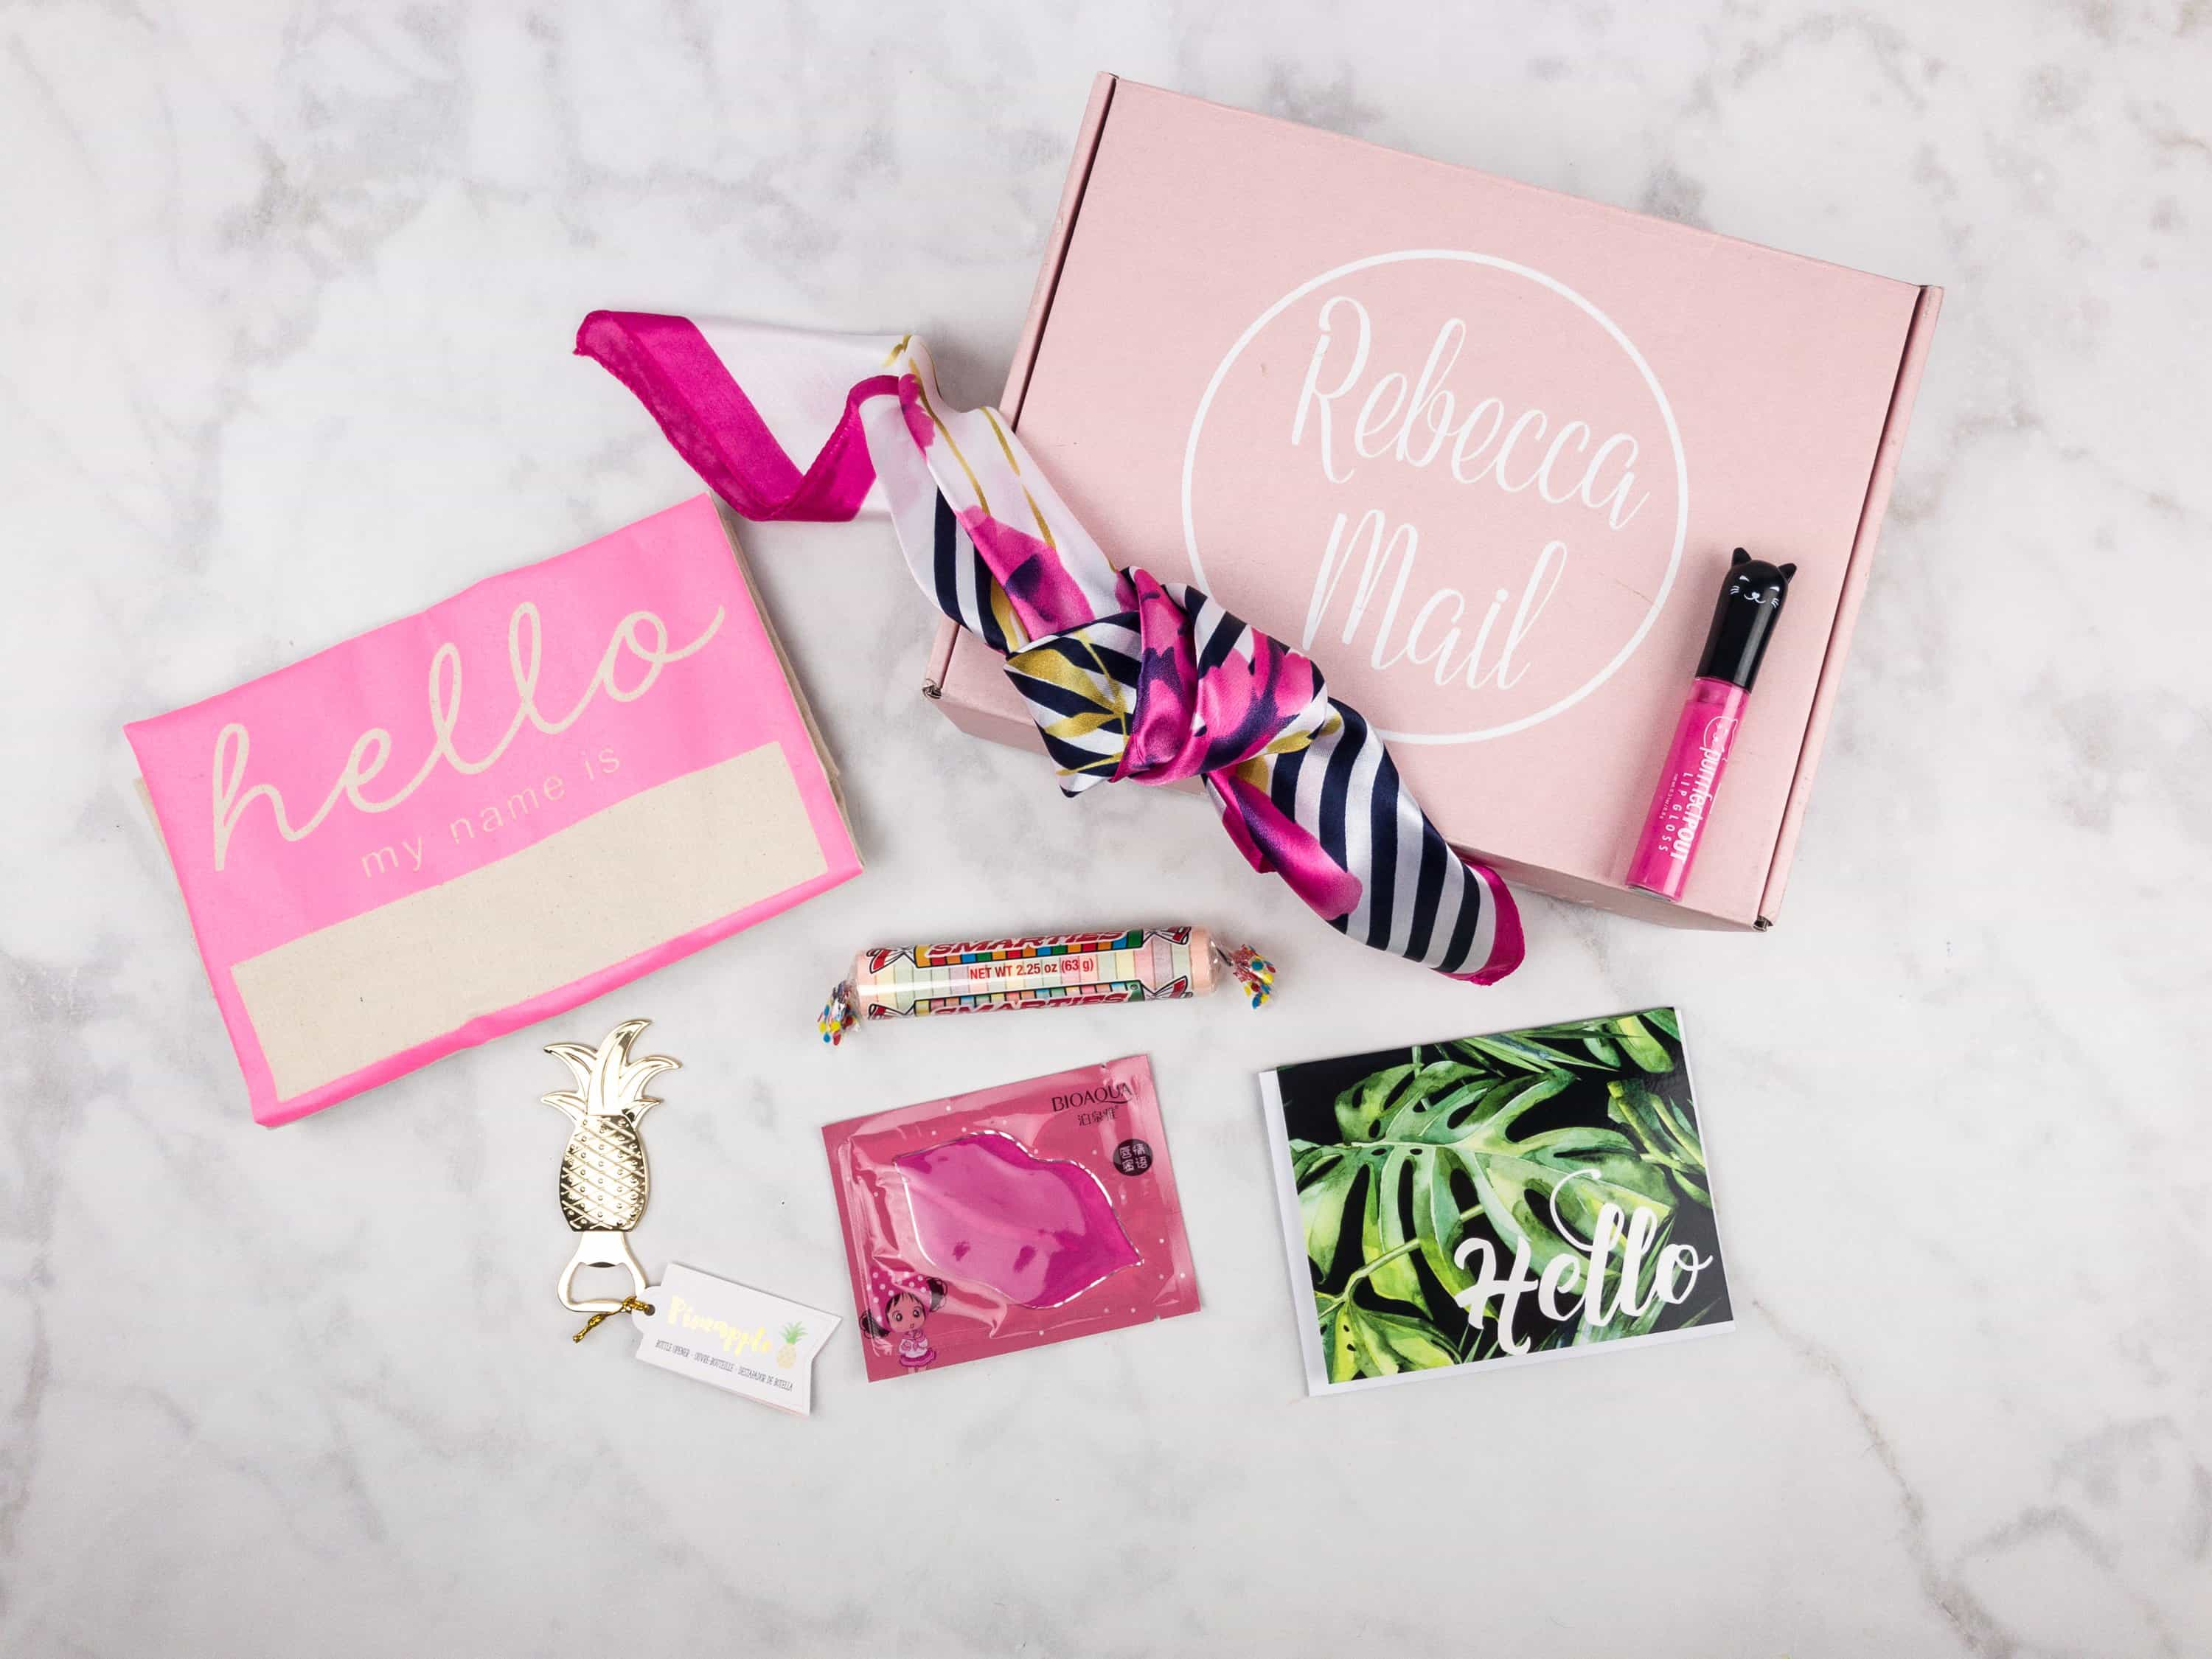 Rebecca Mail July 2017 Subscription Box Review